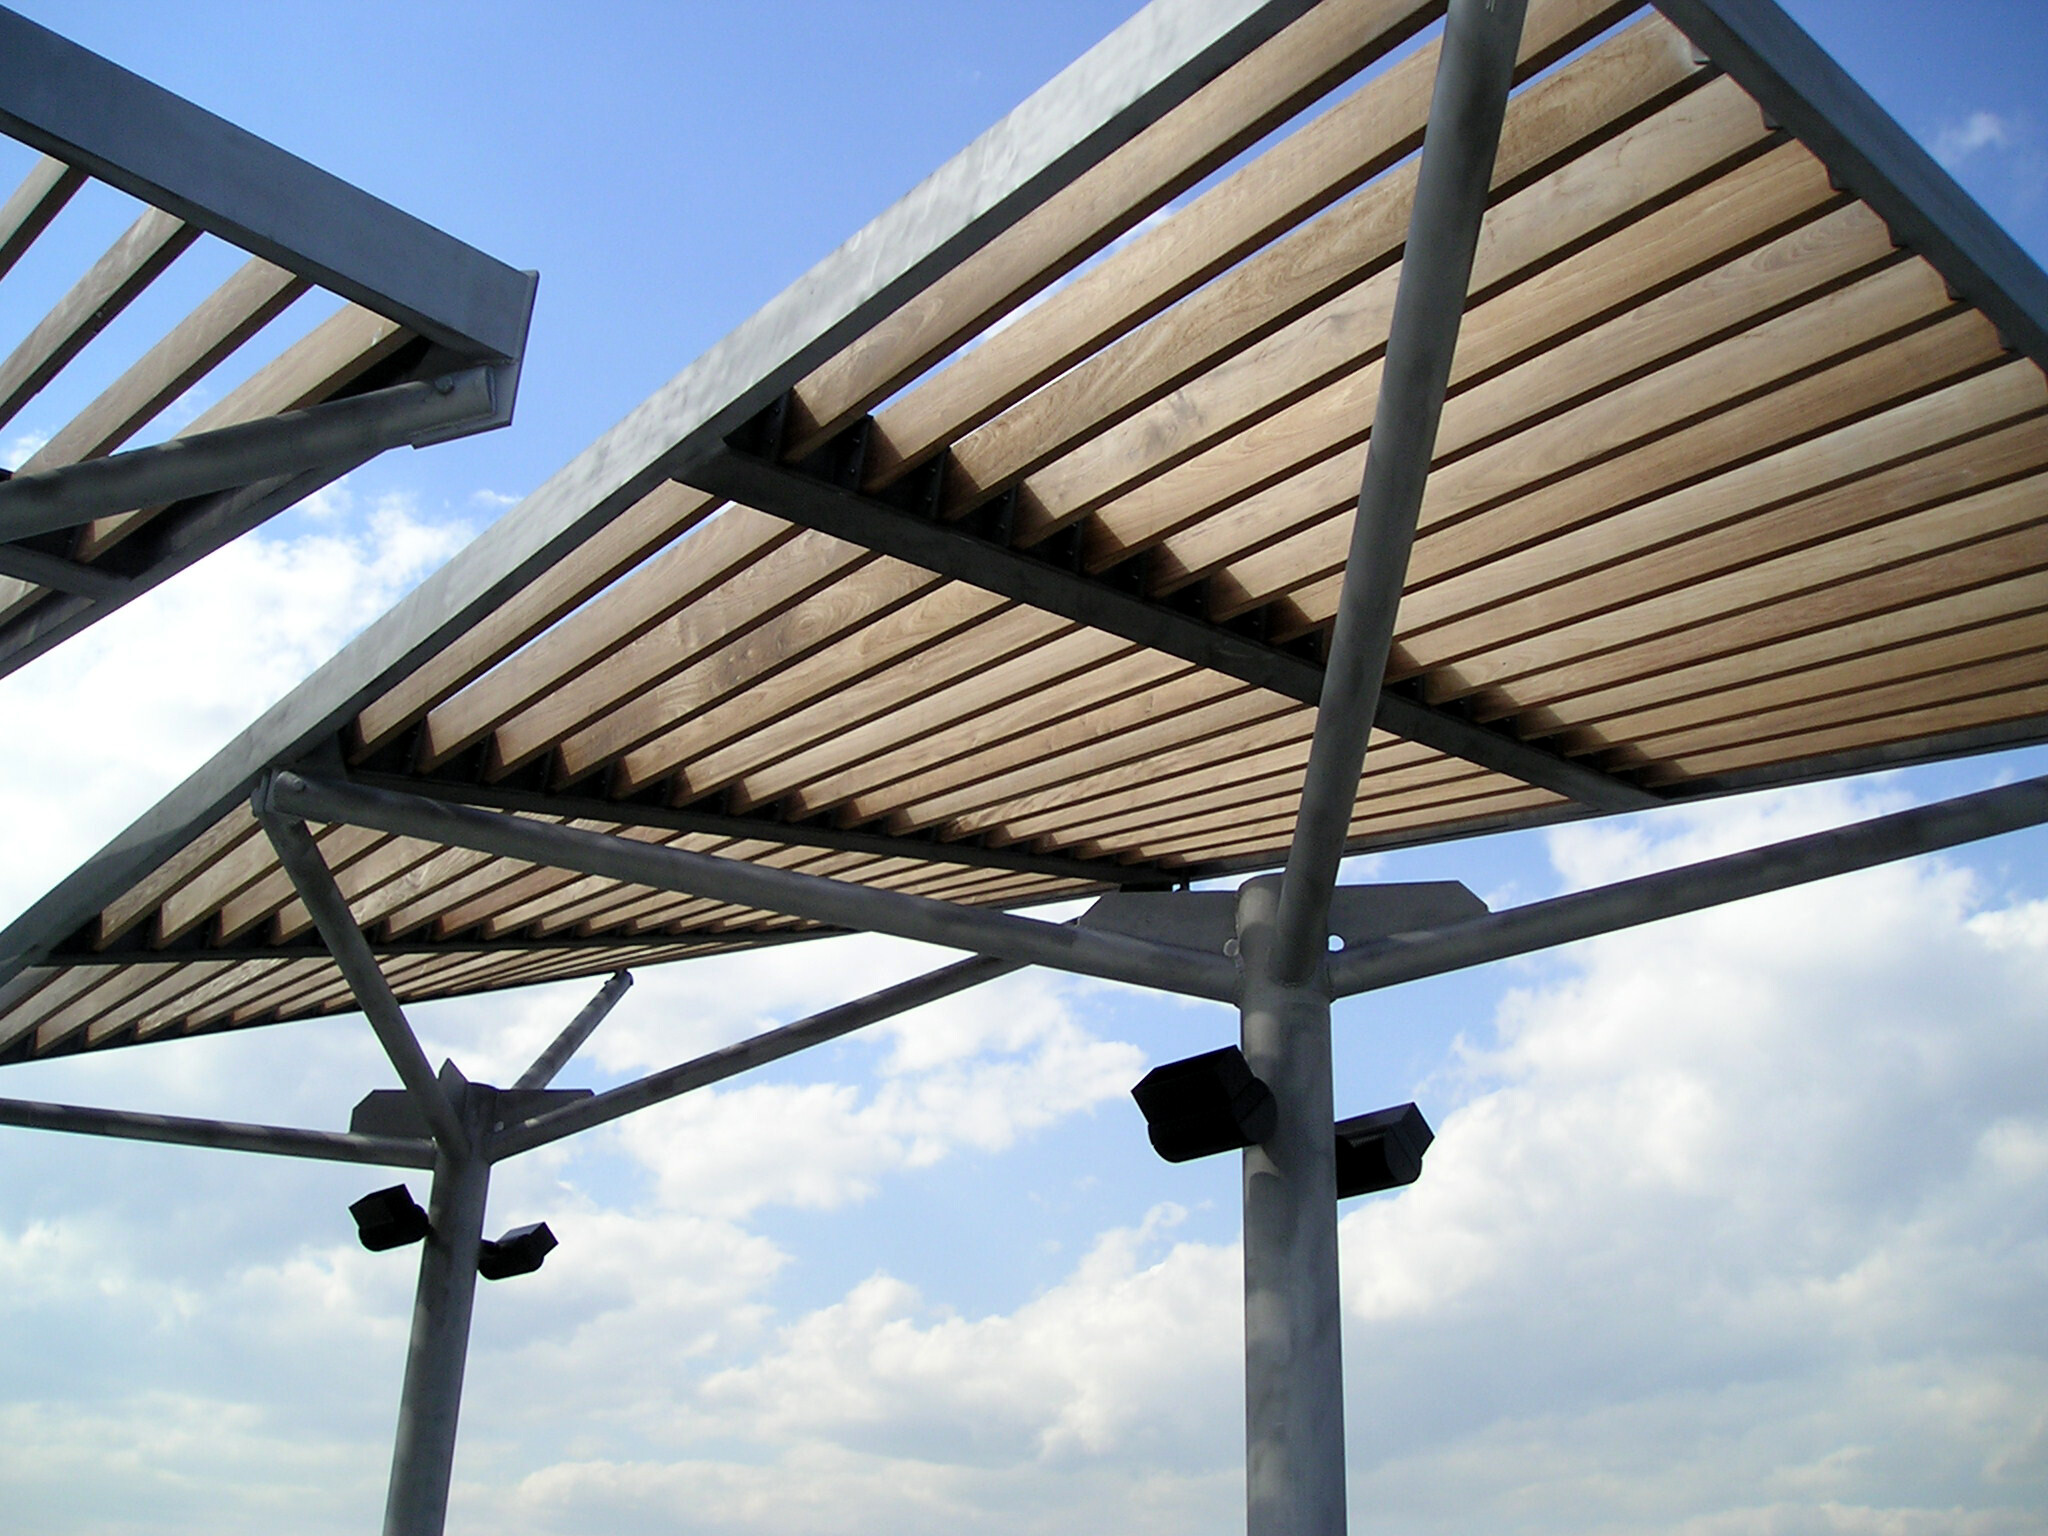 The Clinton Cove shade structures on Pier 95 at Hudson River Park